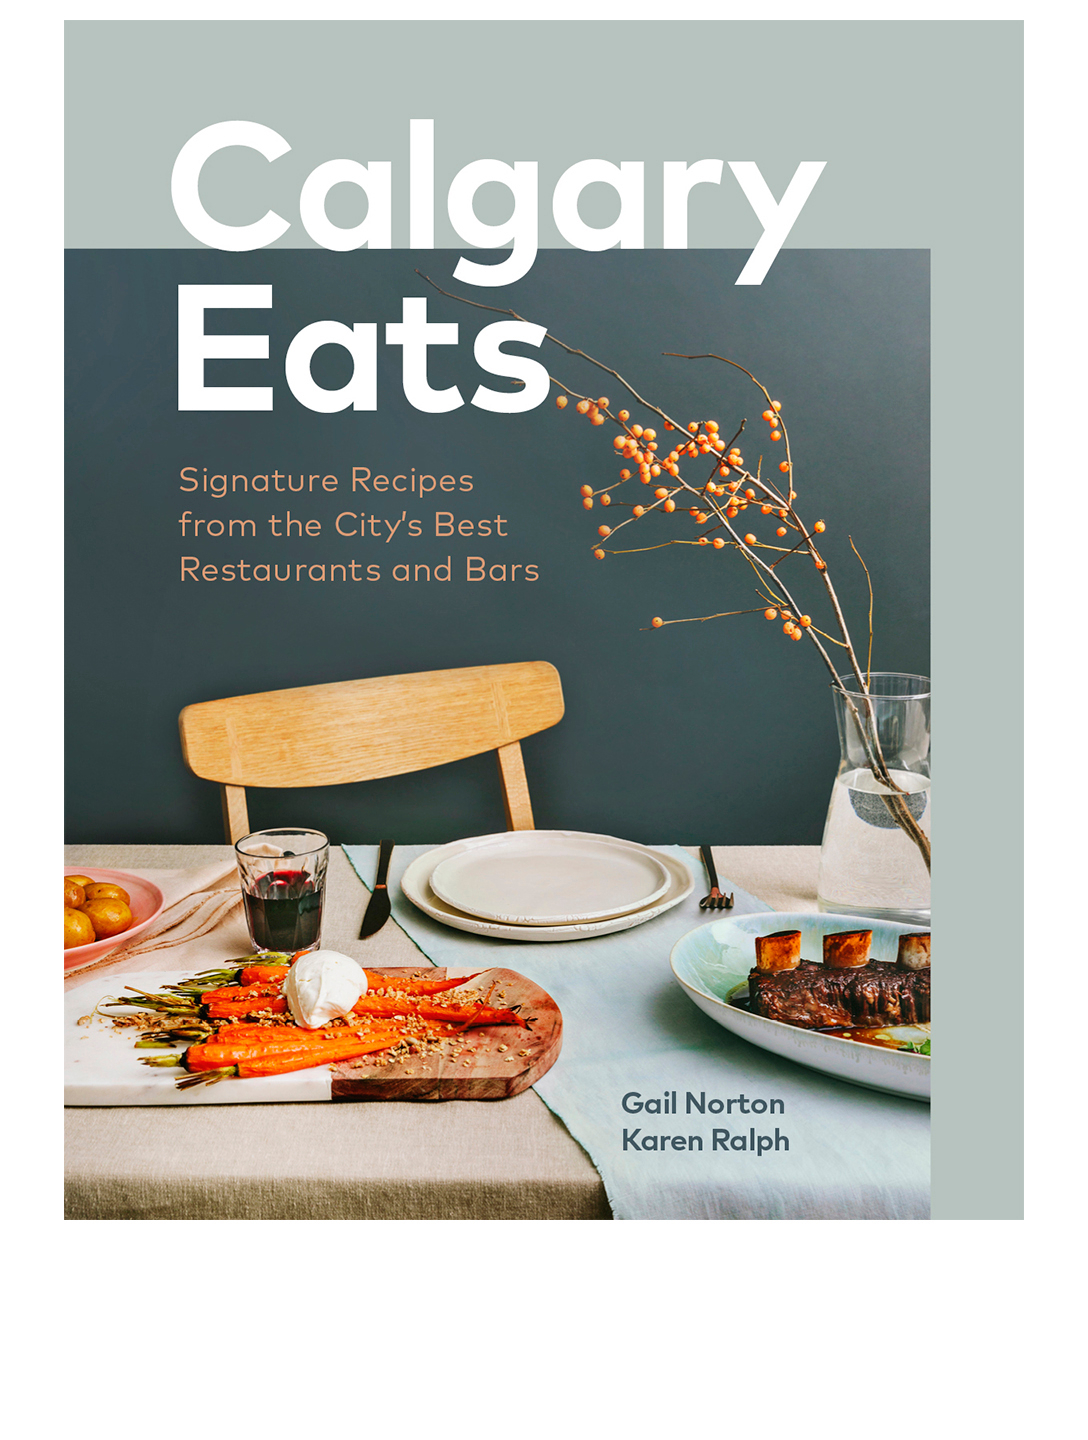 RAINCOAST Calgary Eats: Signature Recipes from the City's Best Restaurants and Bars Cadeaux et produits gourmet